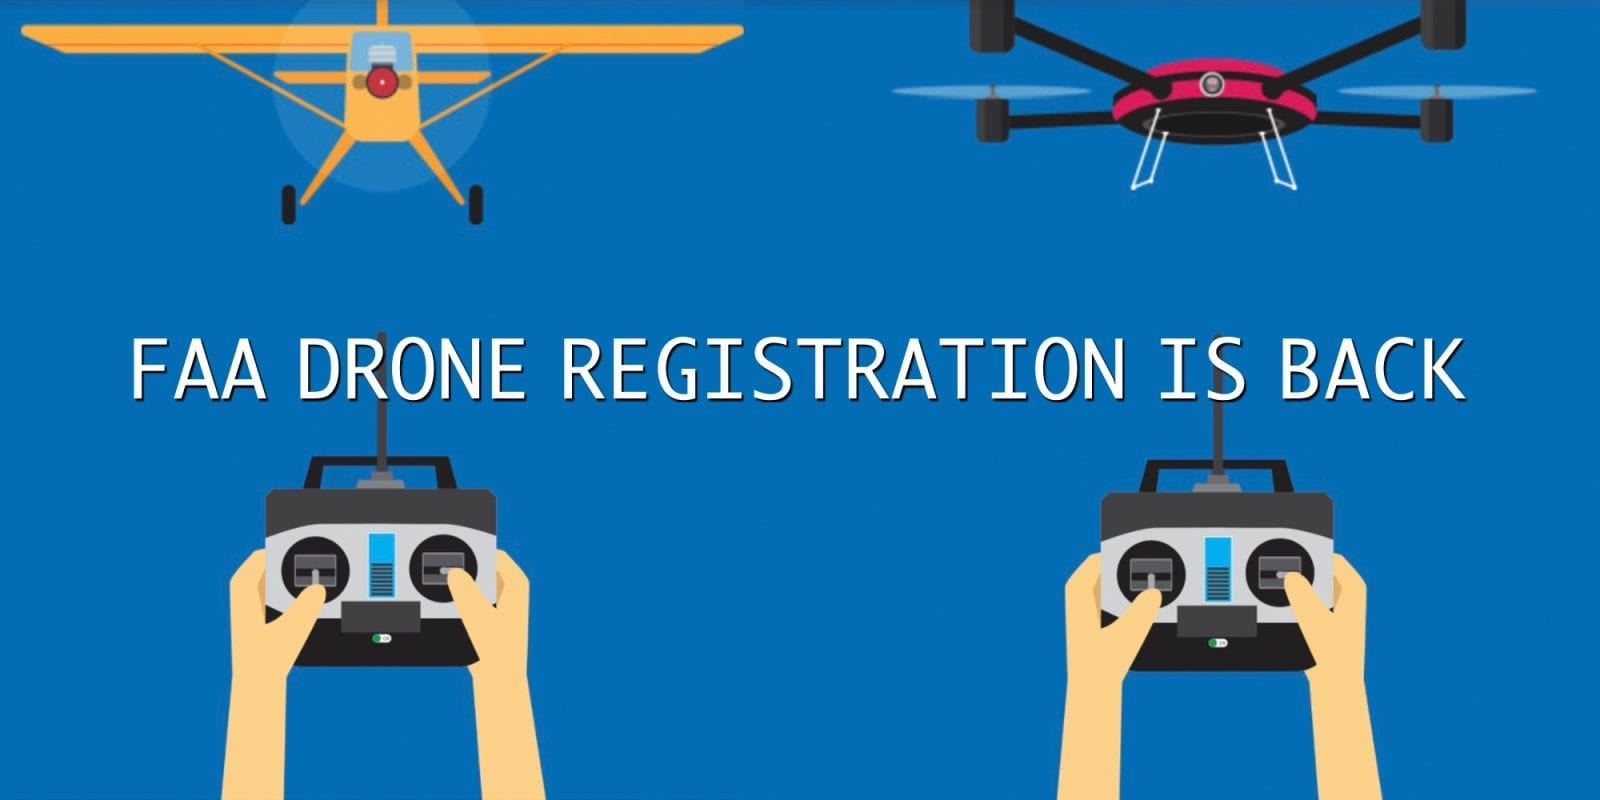 Are we witnessing the collapse of drone registration?